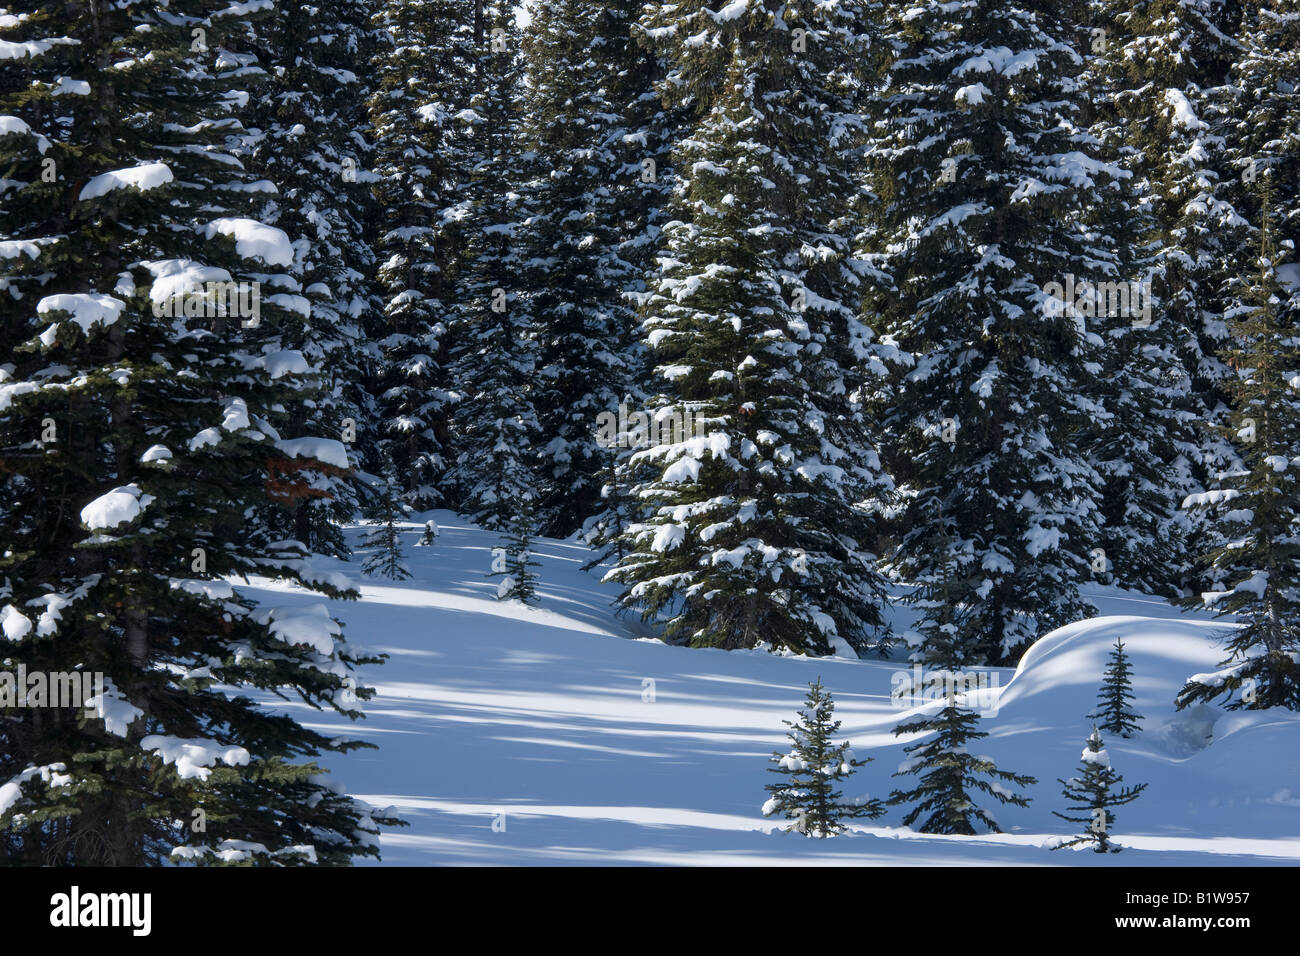 Canada Alberta Banff National Park snow covered pine trees - Stock Image